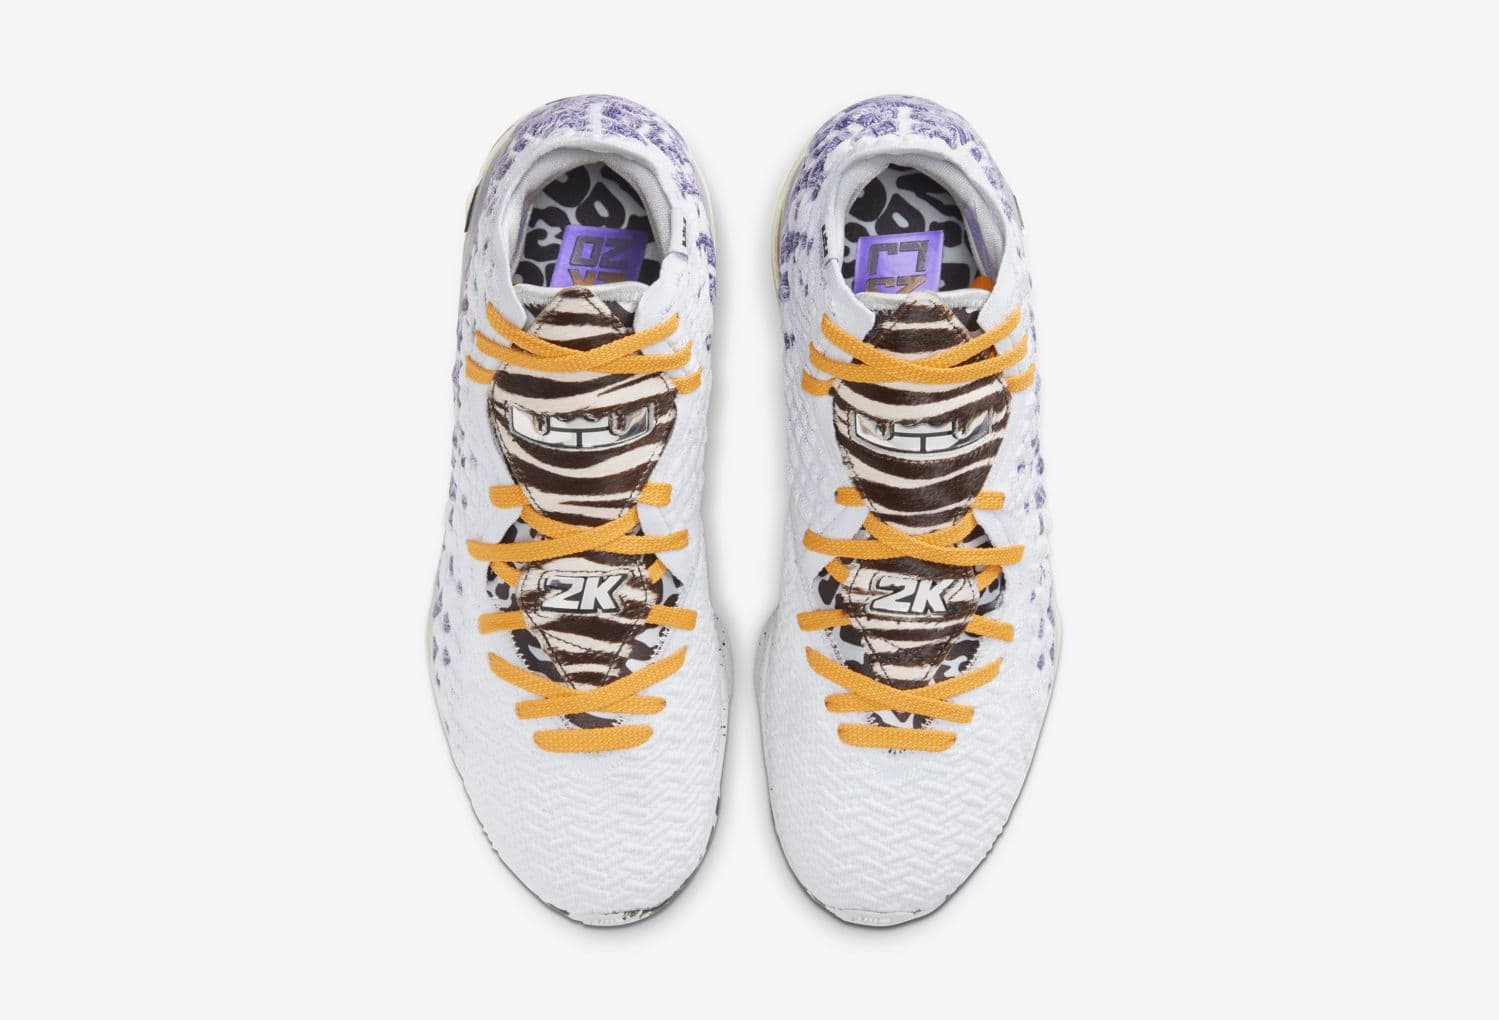 Nike LeBron 17 GE 'Bron 2K Playoffs' Top